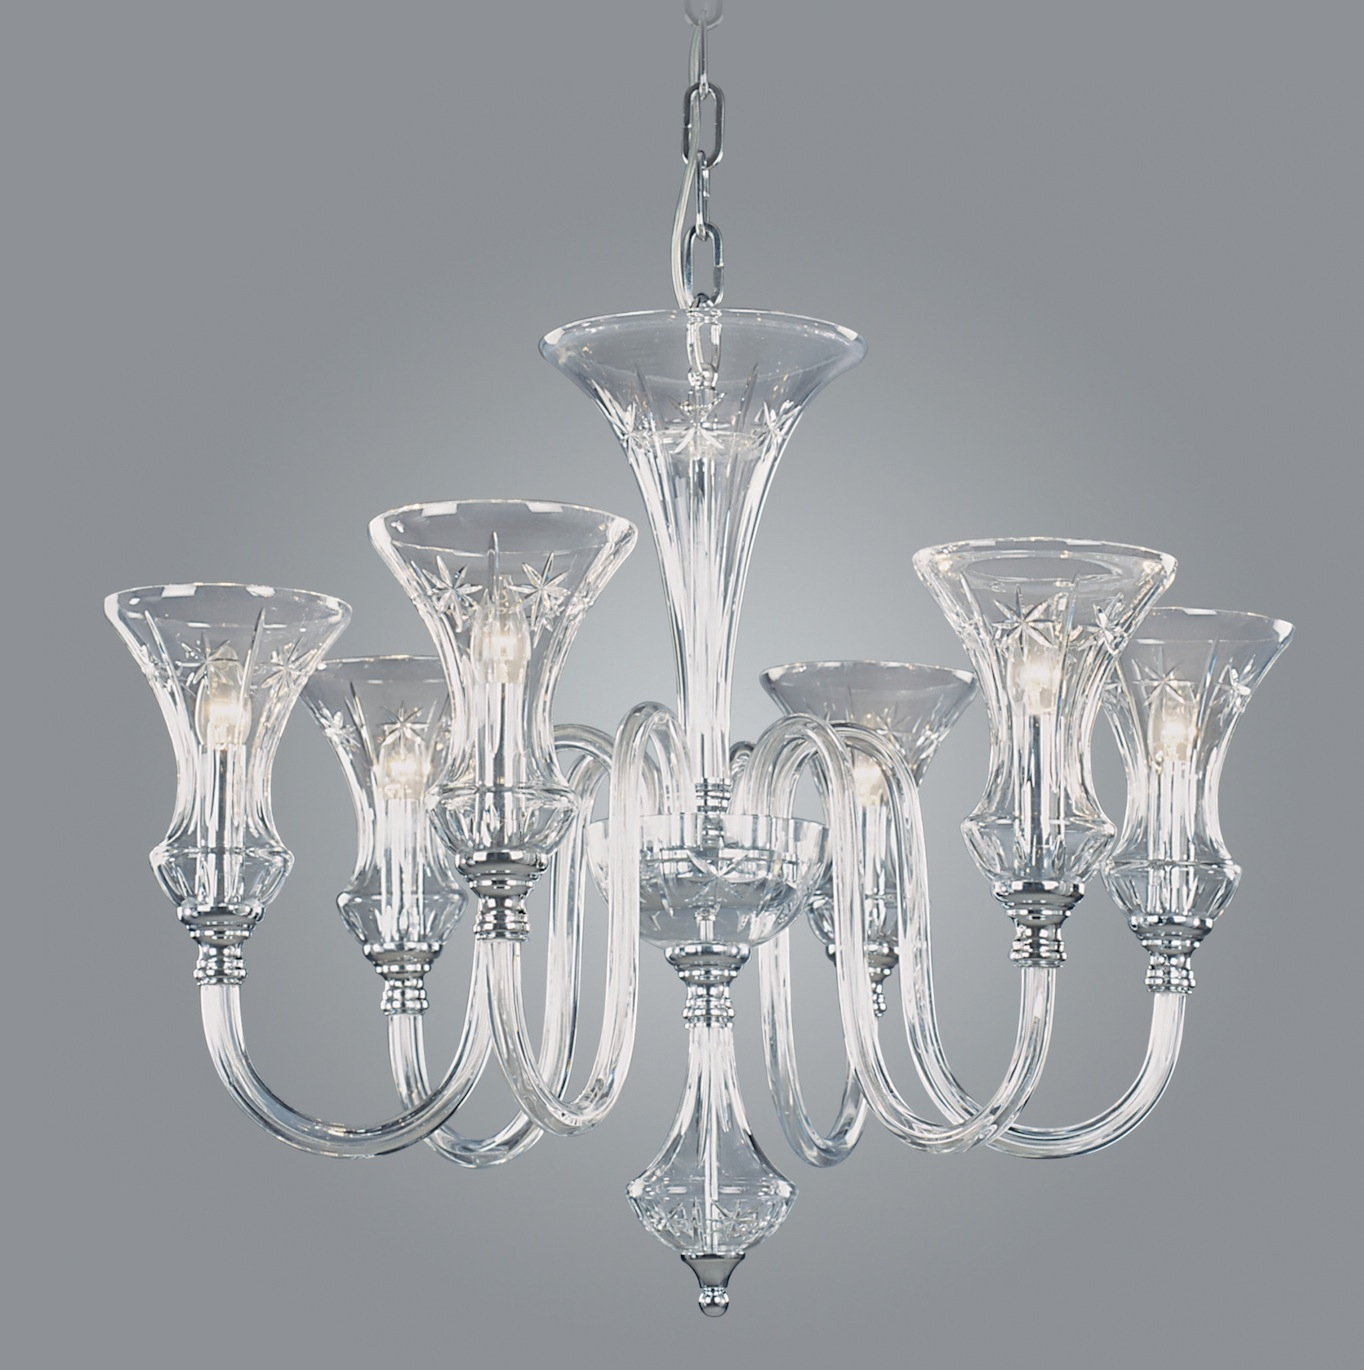 Modern Glass Chandeliers In Small Glass Chandeliers (#8 of 12)